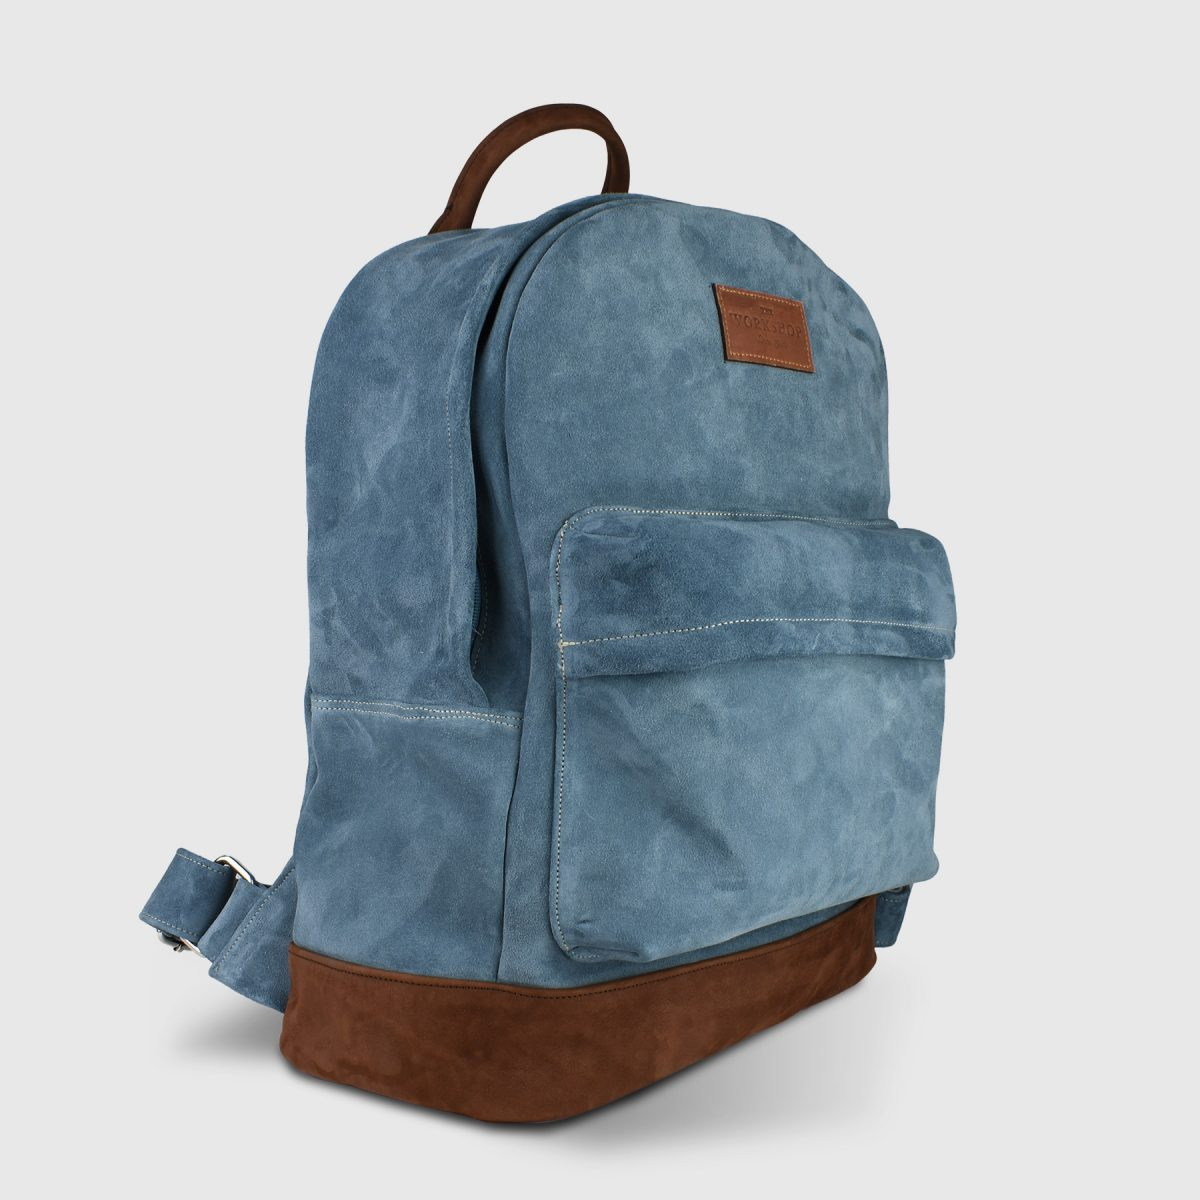 Oliver Blue Lagoon Suede Leather Unisex Backpack - Handmade Backpack by The Workshop